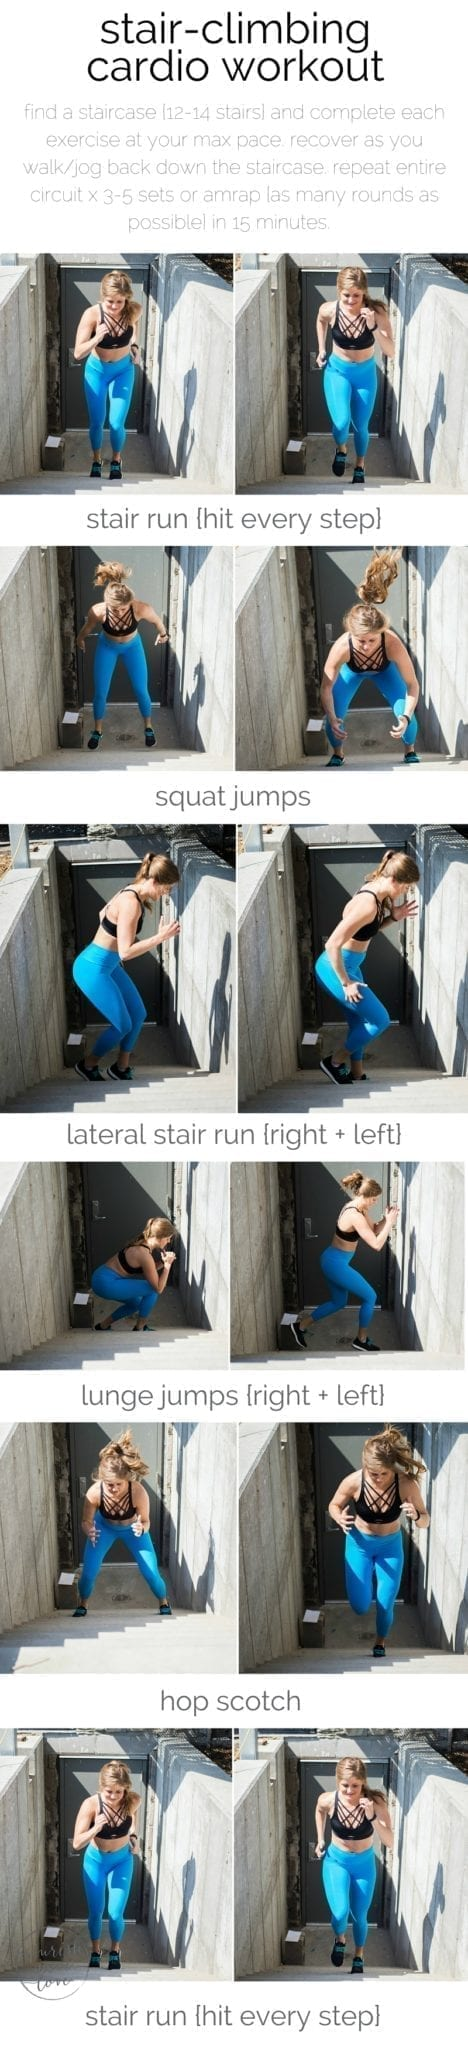 stair-climbing cardio workout | stair workout | outdoor workout | Butt workout | lower body workout